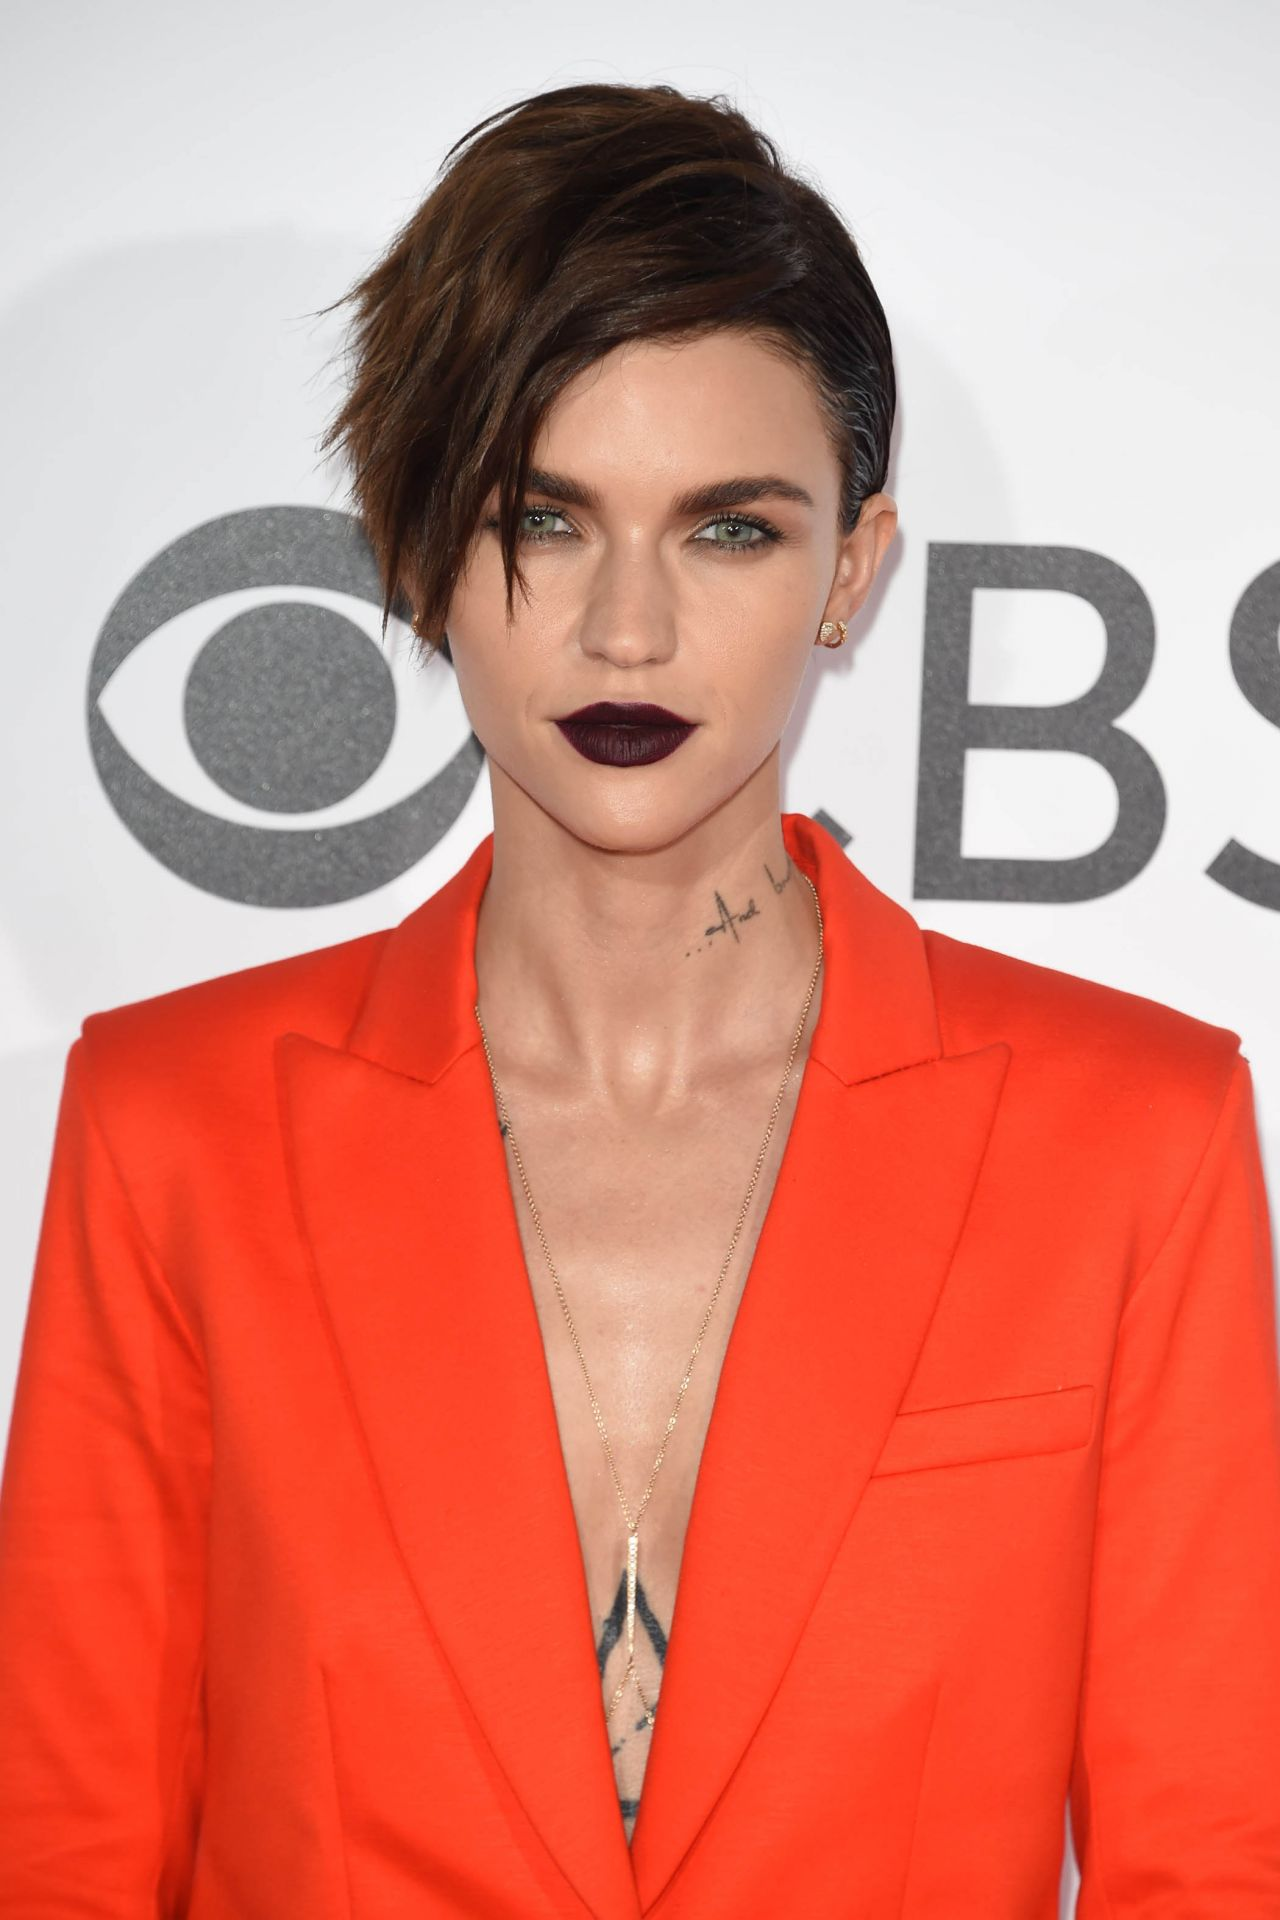 Roter Teppich Los Angeles Ruby Rose People S Choice Awards In Los Angeles 1 18 2017